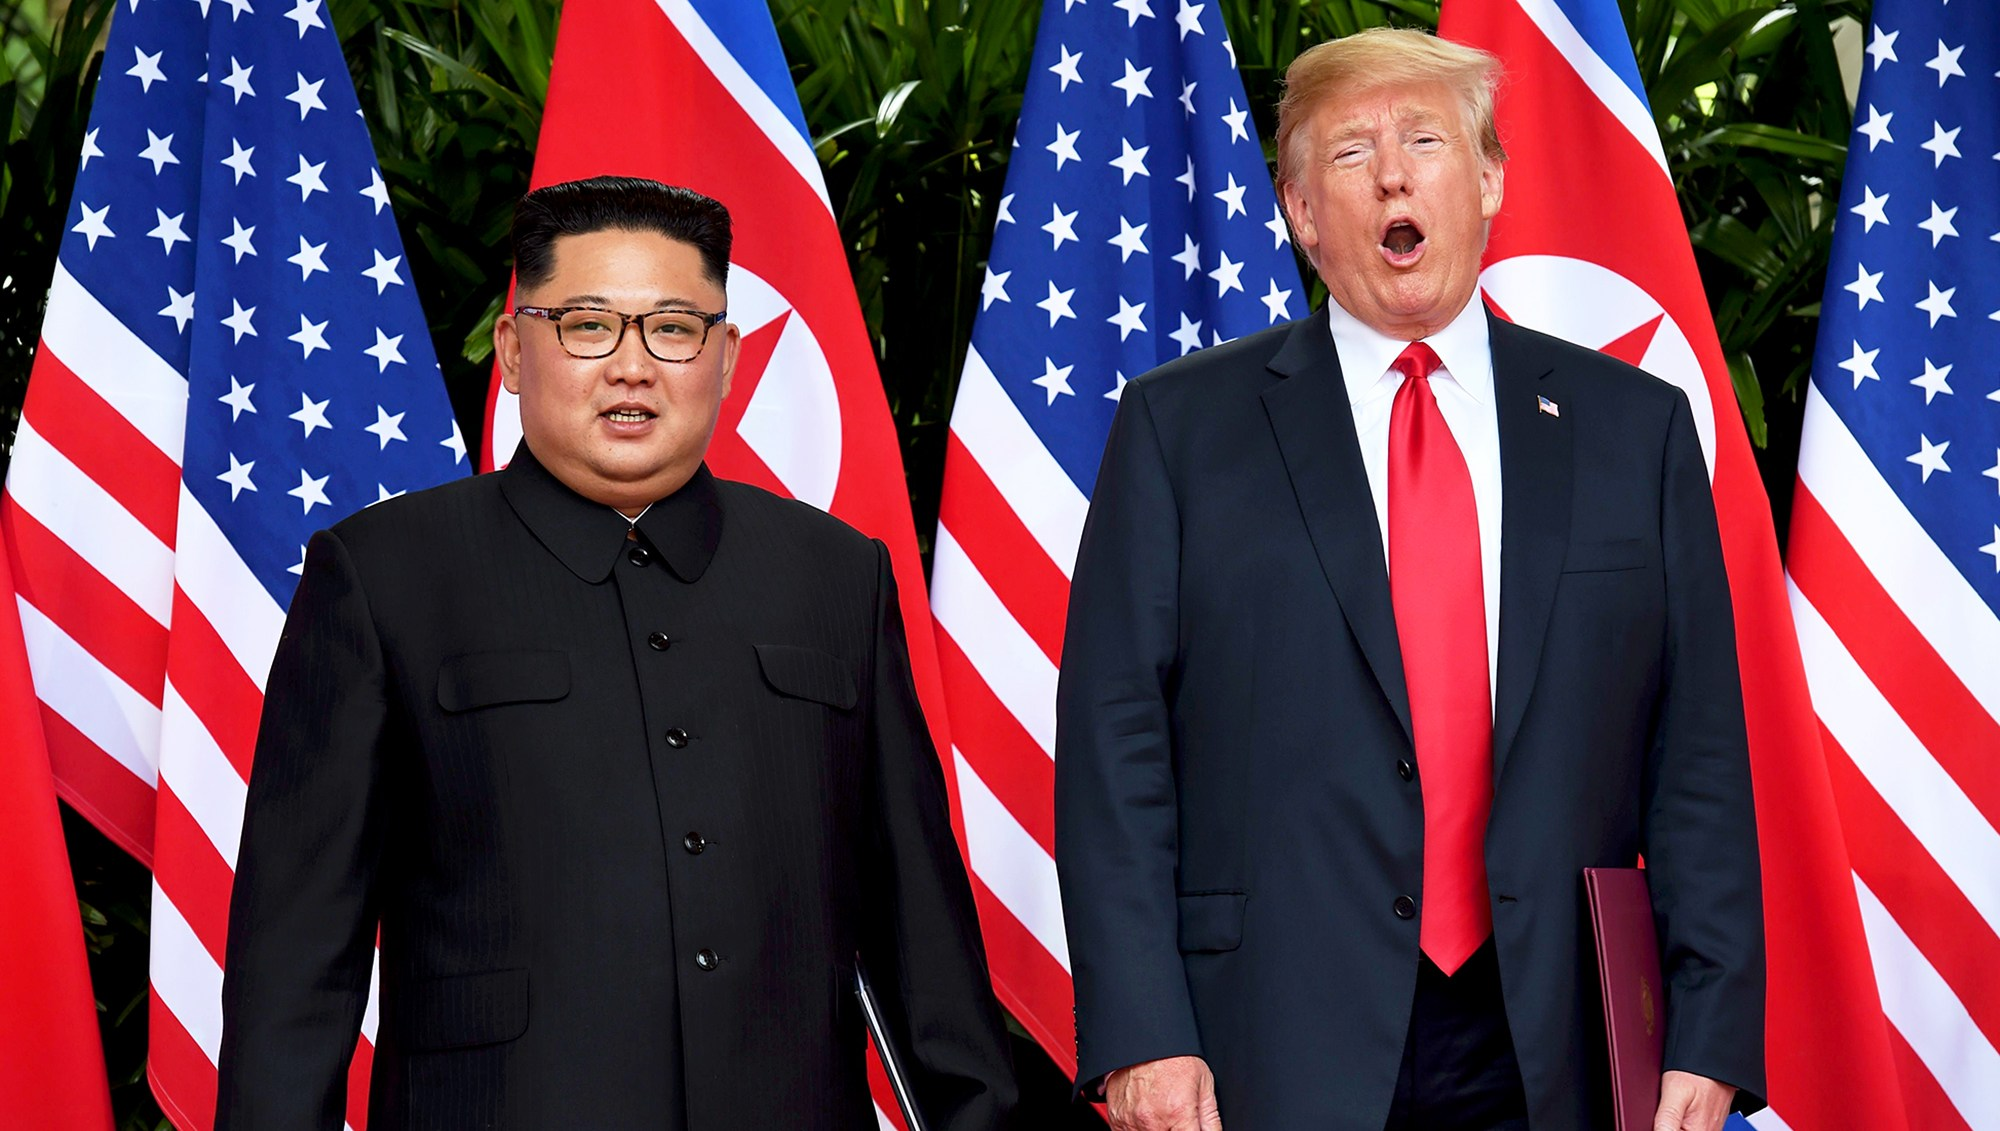 Kim Jong Un and Donald Trump after taking part in a signing ceremony at the end of their historic U.S.-North Korea summit at the Capella Hotel on Sentosa island in Singapore on June 12, 2018.